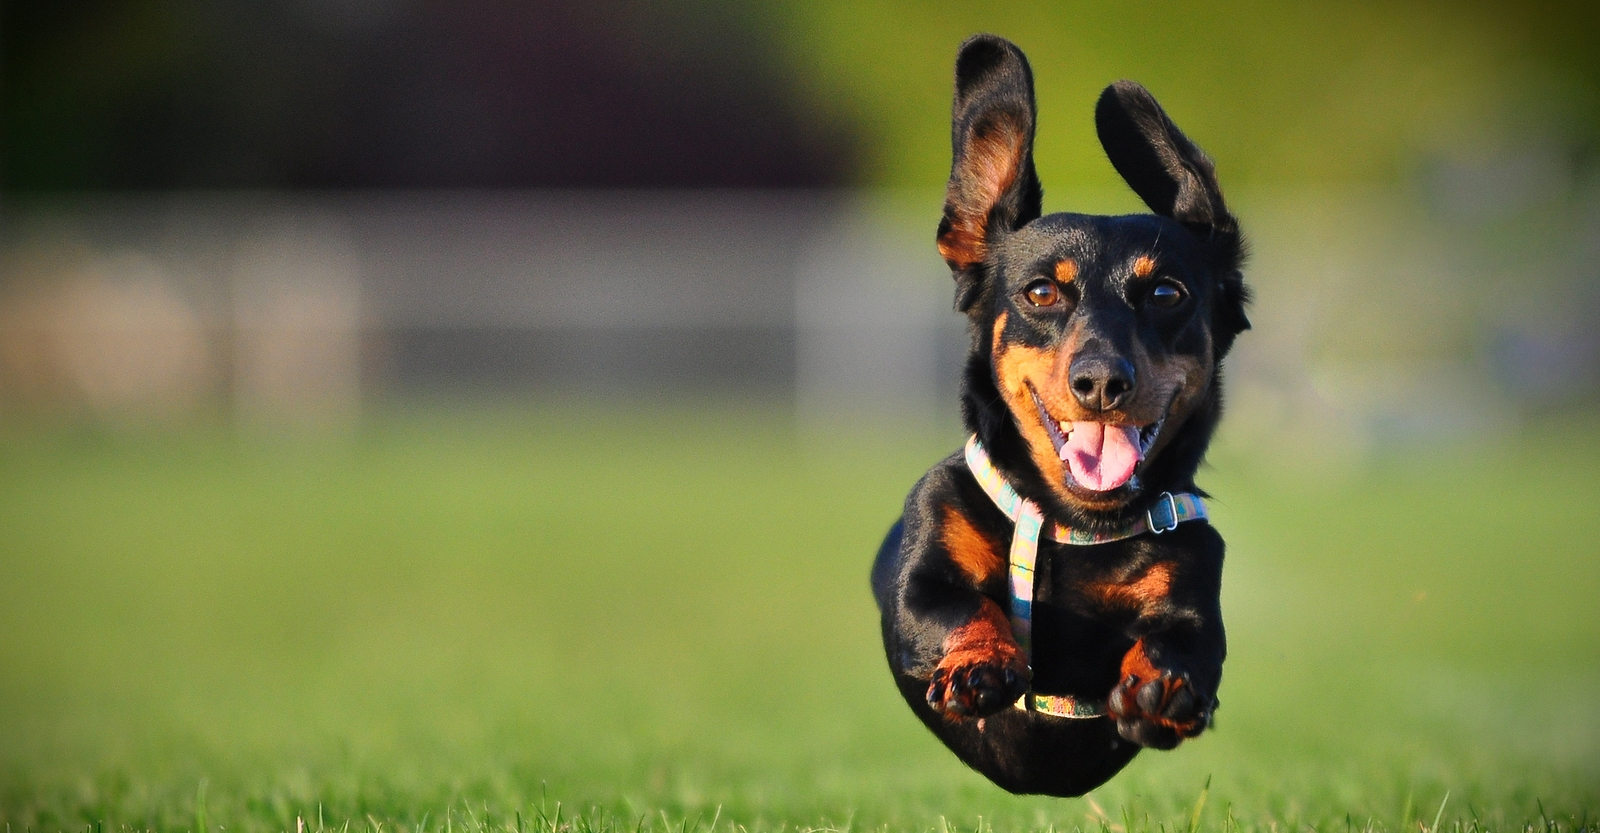 6 Essential Tips For Great Action Shots Of Dogs